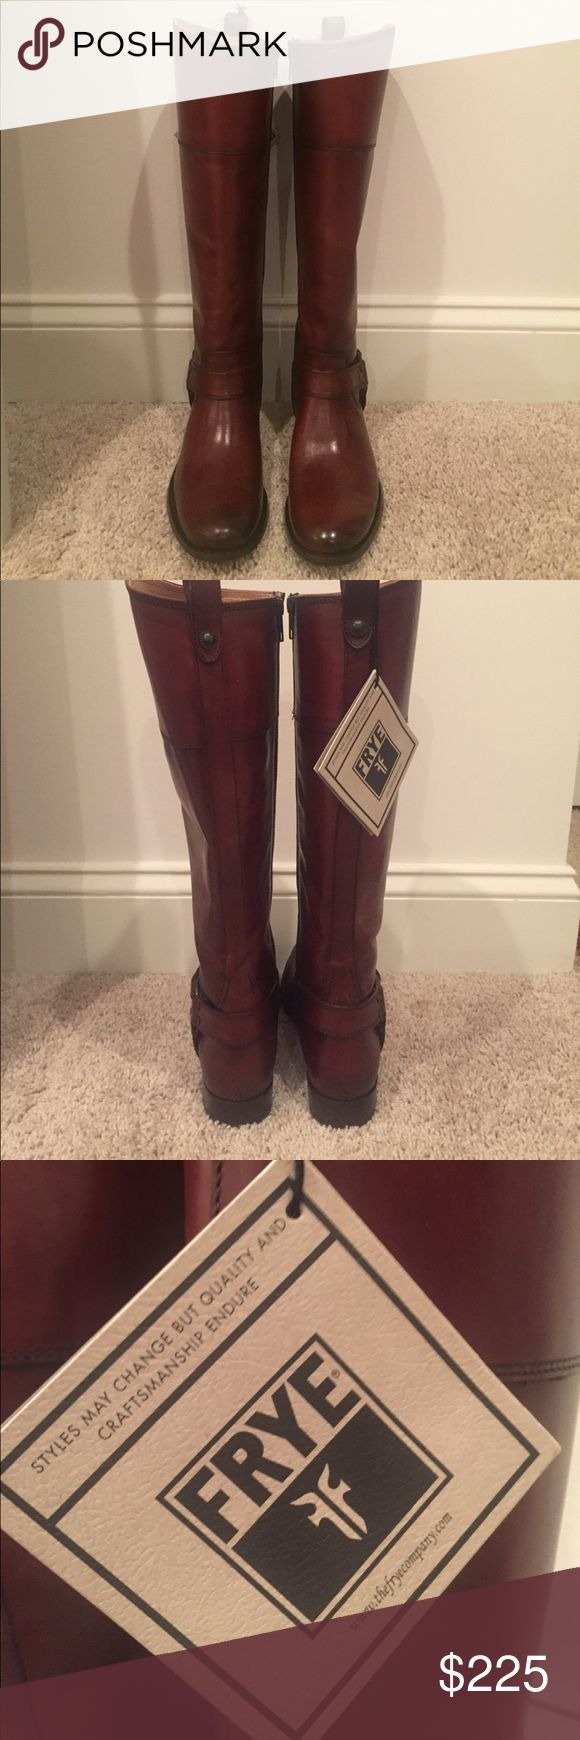 "👠1 day sale👠 FRYE Melissa Harness Inside Zip These boots are new - never been worn although the bottom has some scuffing on one sole please see picture. Slip into an iconic knee-high boot with the extra ease of a full side zip. Rich, supple leather and classic equestrian cut. Burnished leathers are hand-finished for a rich, unique look.Round toe. Solid vamp. Metal harness. Side zip closure. Approx. 16.5"" shaft height, 14.5"" opening circumference. Approx. 1"" heel Materials: Leather upper…"